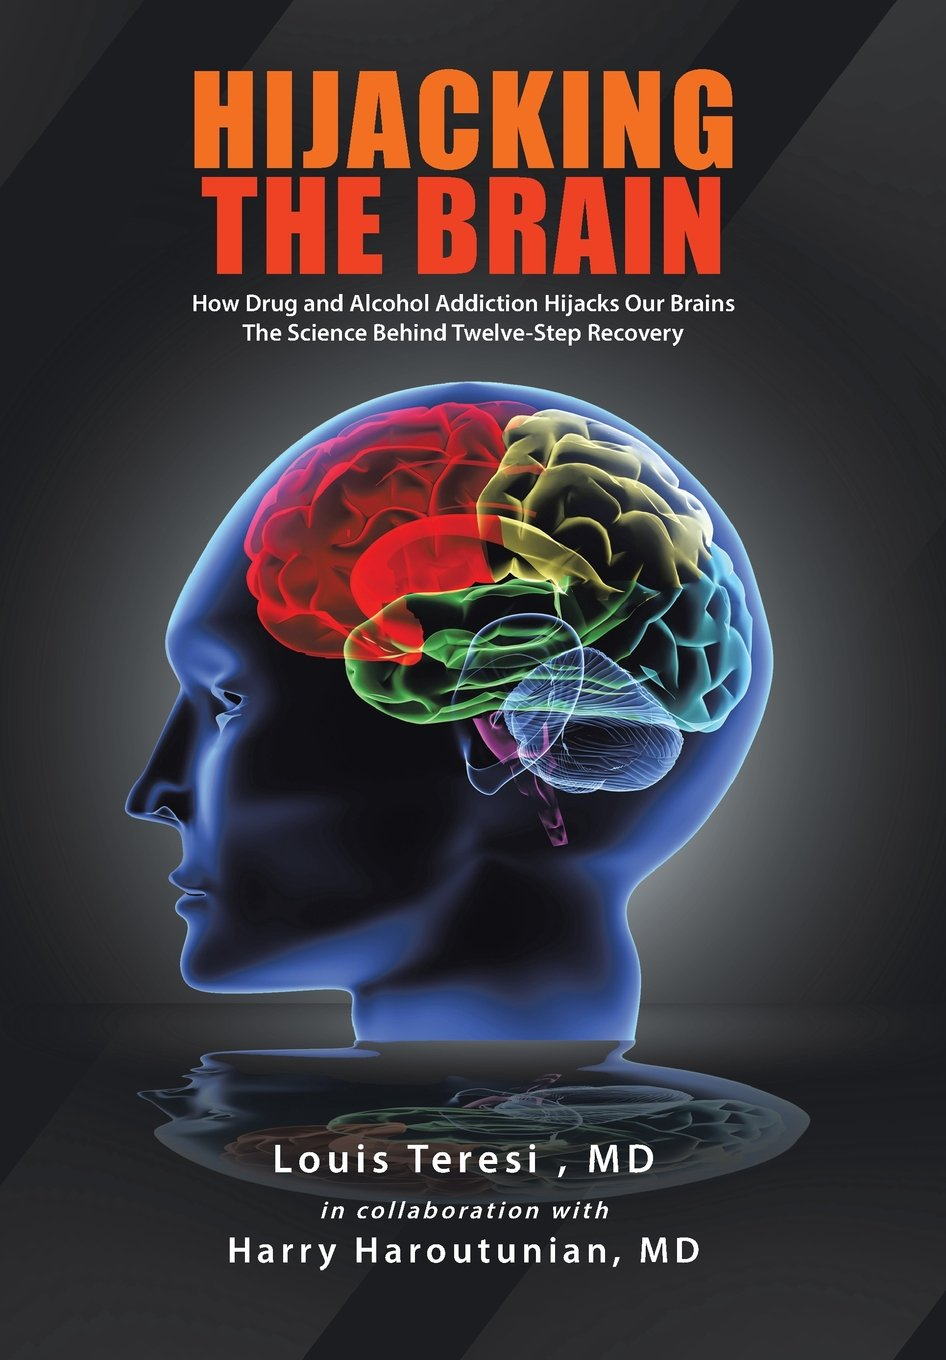 Download Hijacking the Brain: How Drug and Alcohol Addiction Hijacks Our Brains - The Science Behind Twelve-Step Recovery PDF